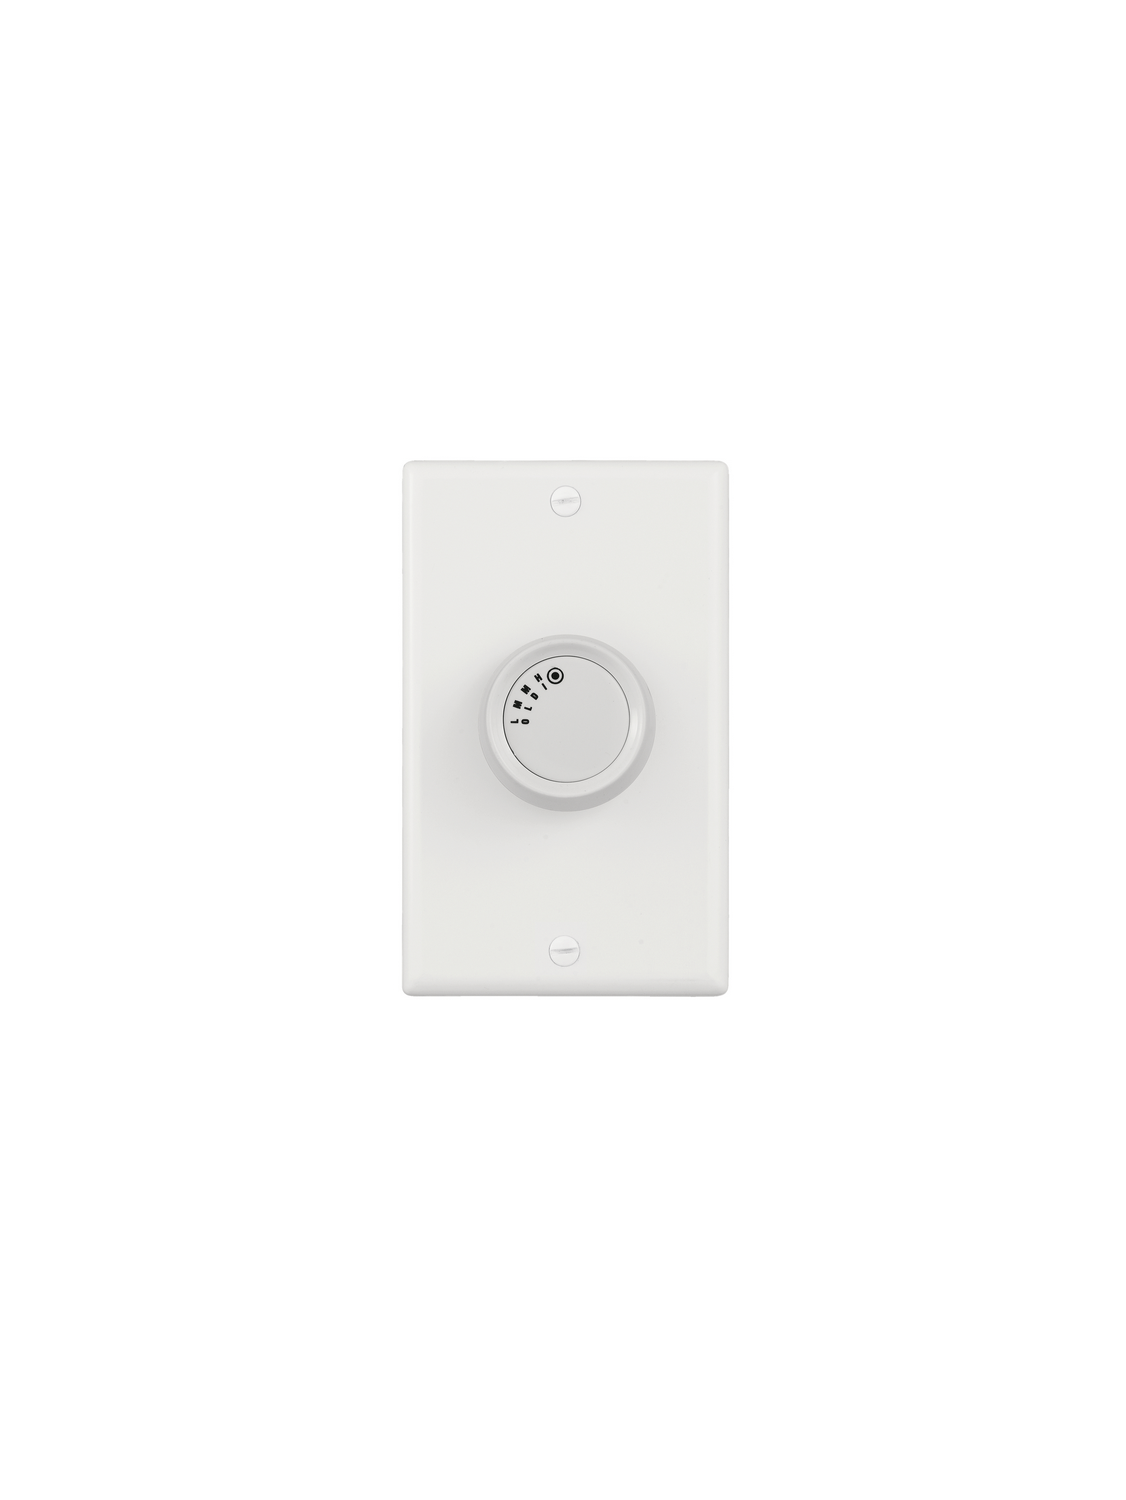 4 Speed Rotary Wall Switch 5 A from the Accessory collection by Kichler 370032MUL